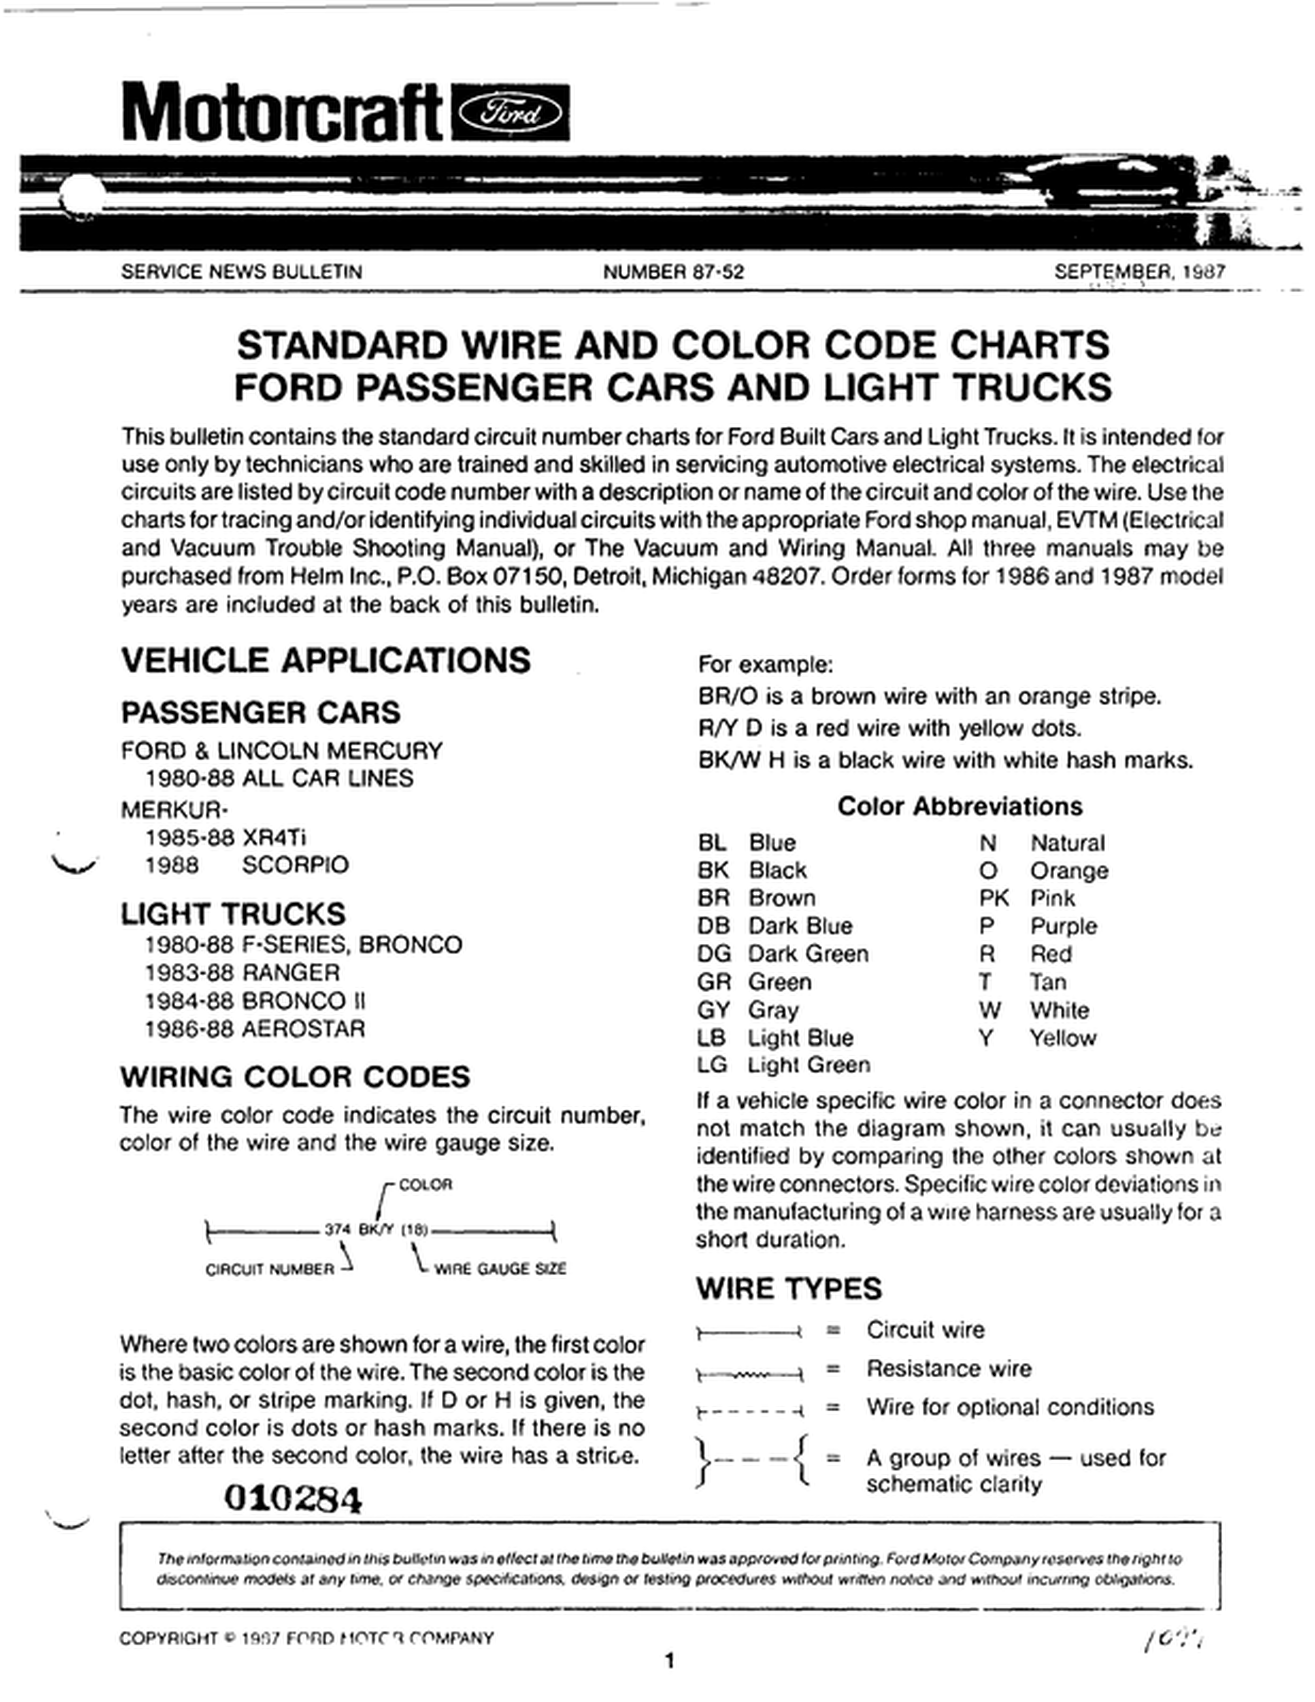 Ford Wiring Color Code Library 2014 F 250 Standard Wire And Codes Garys Garagemahal The Bullnose Bible Picture For F250